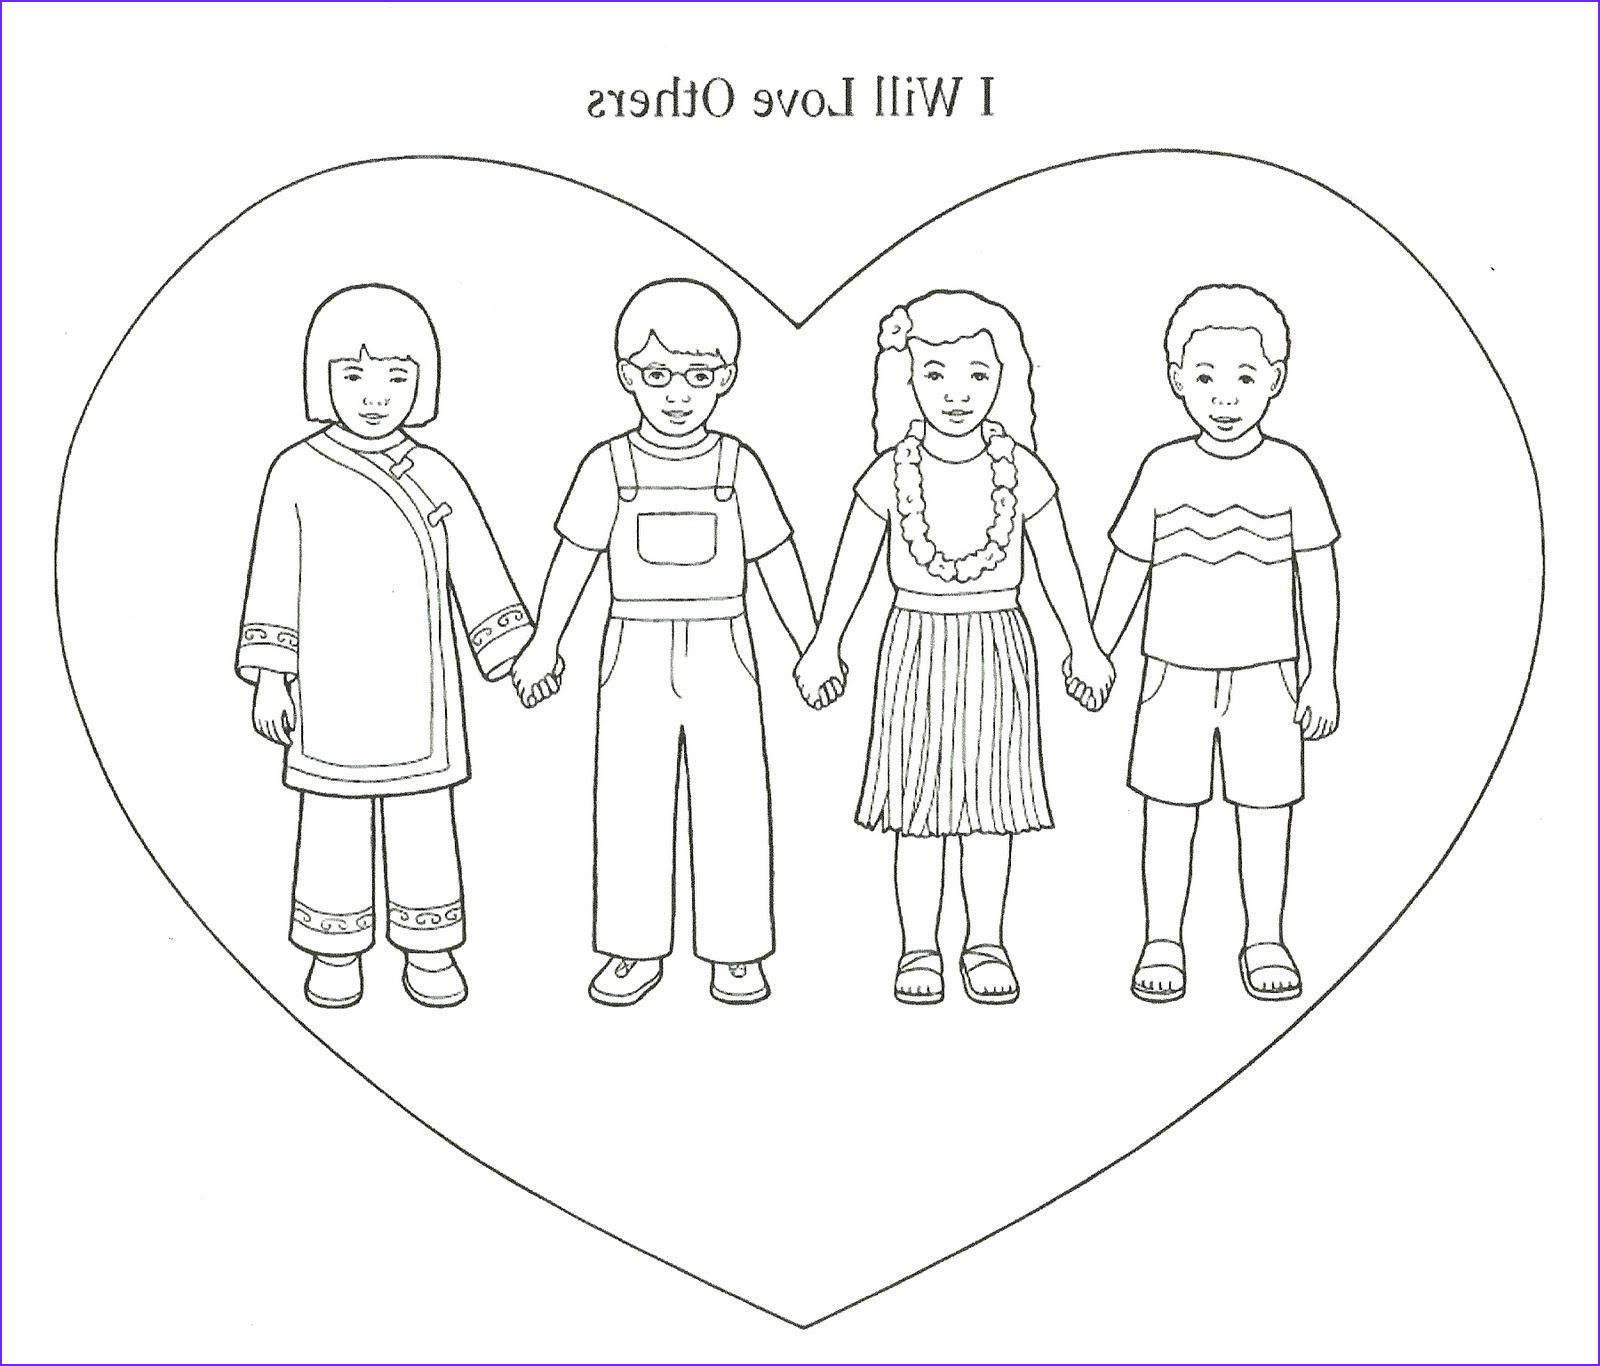 Love Your Neighbor Coloring Page Beautiful Image Love Your Neighbor as Yourself Coloring Pages Matthew 22